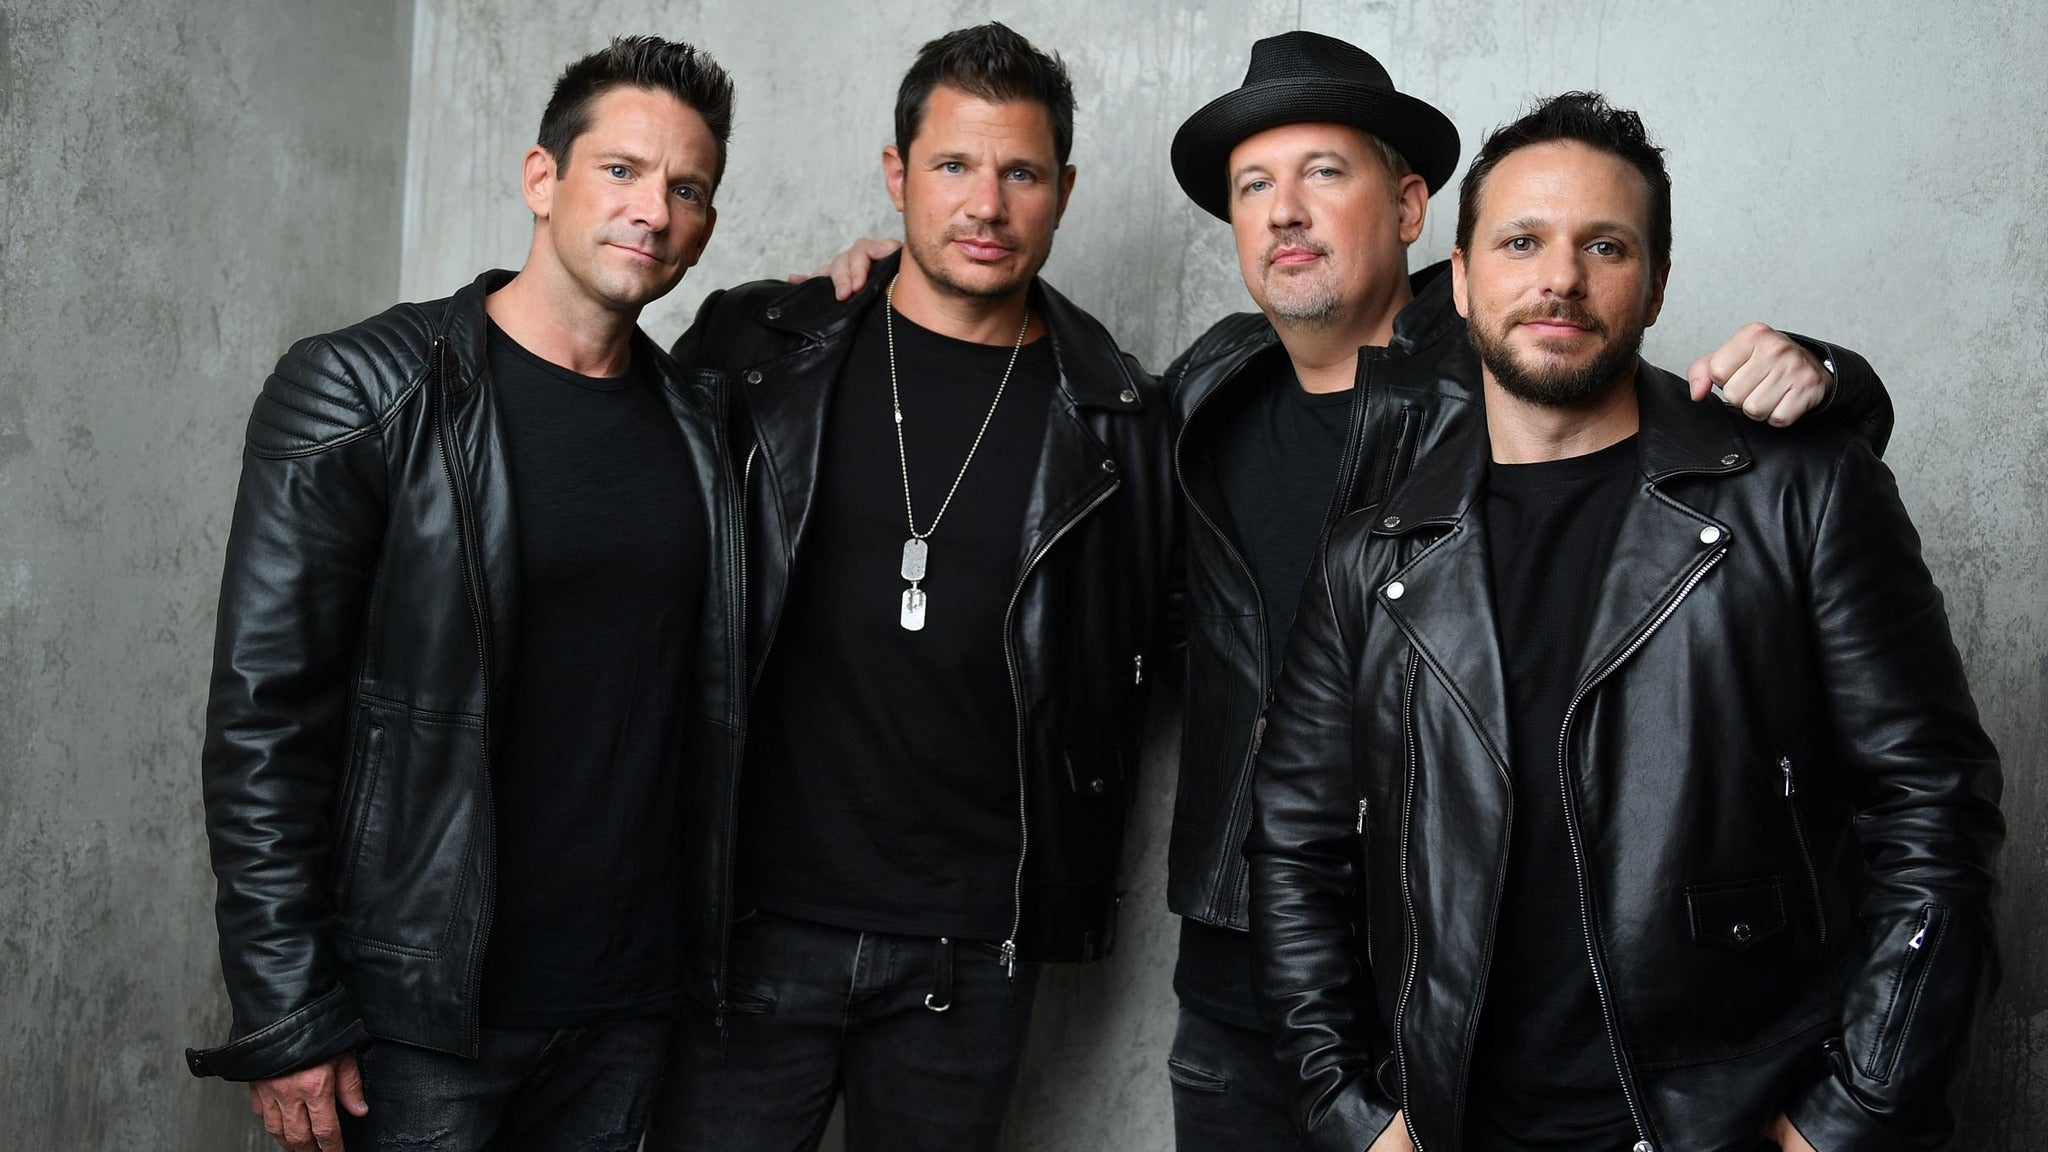 98 Degrees at First Interstate Arena